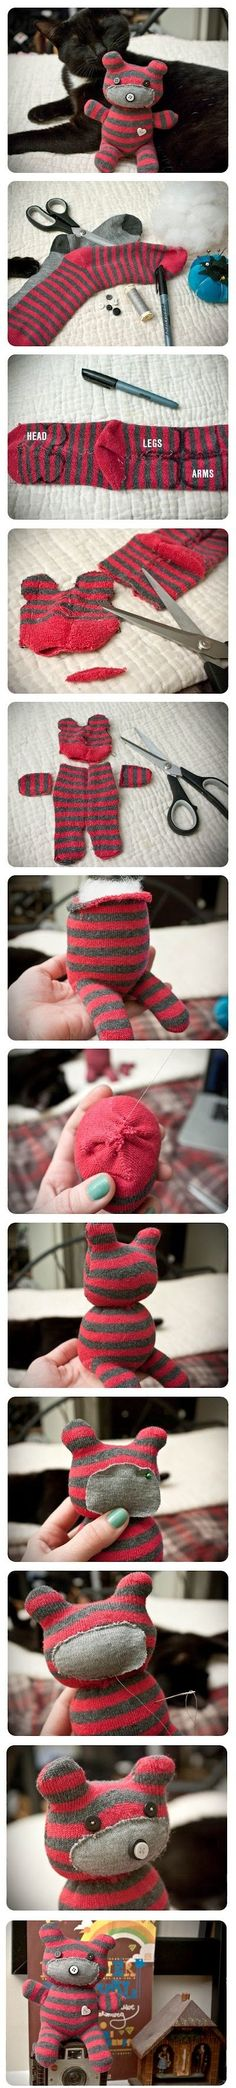 DIY Cute Little Teddy Bear.  Cuter cat!  :D by amayaa